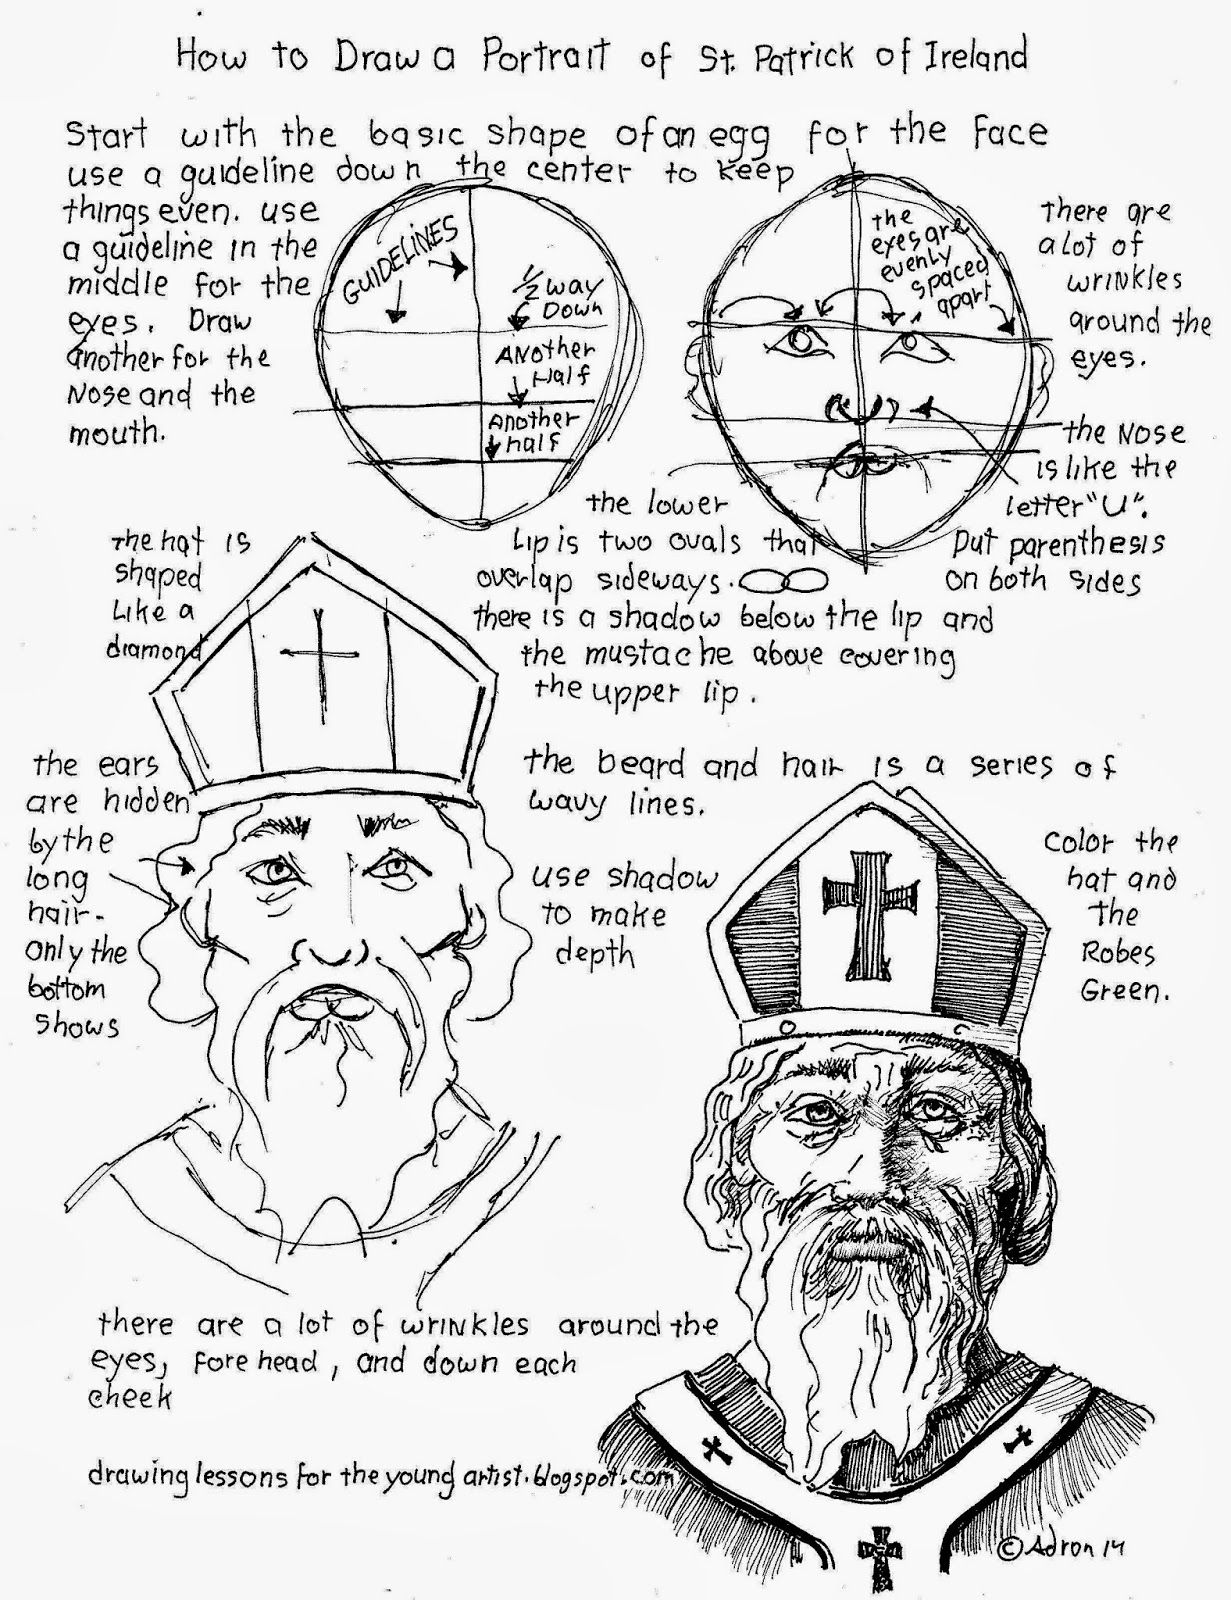 How To Draw A Portrait Of St Patrick Of Ireland Worksheet